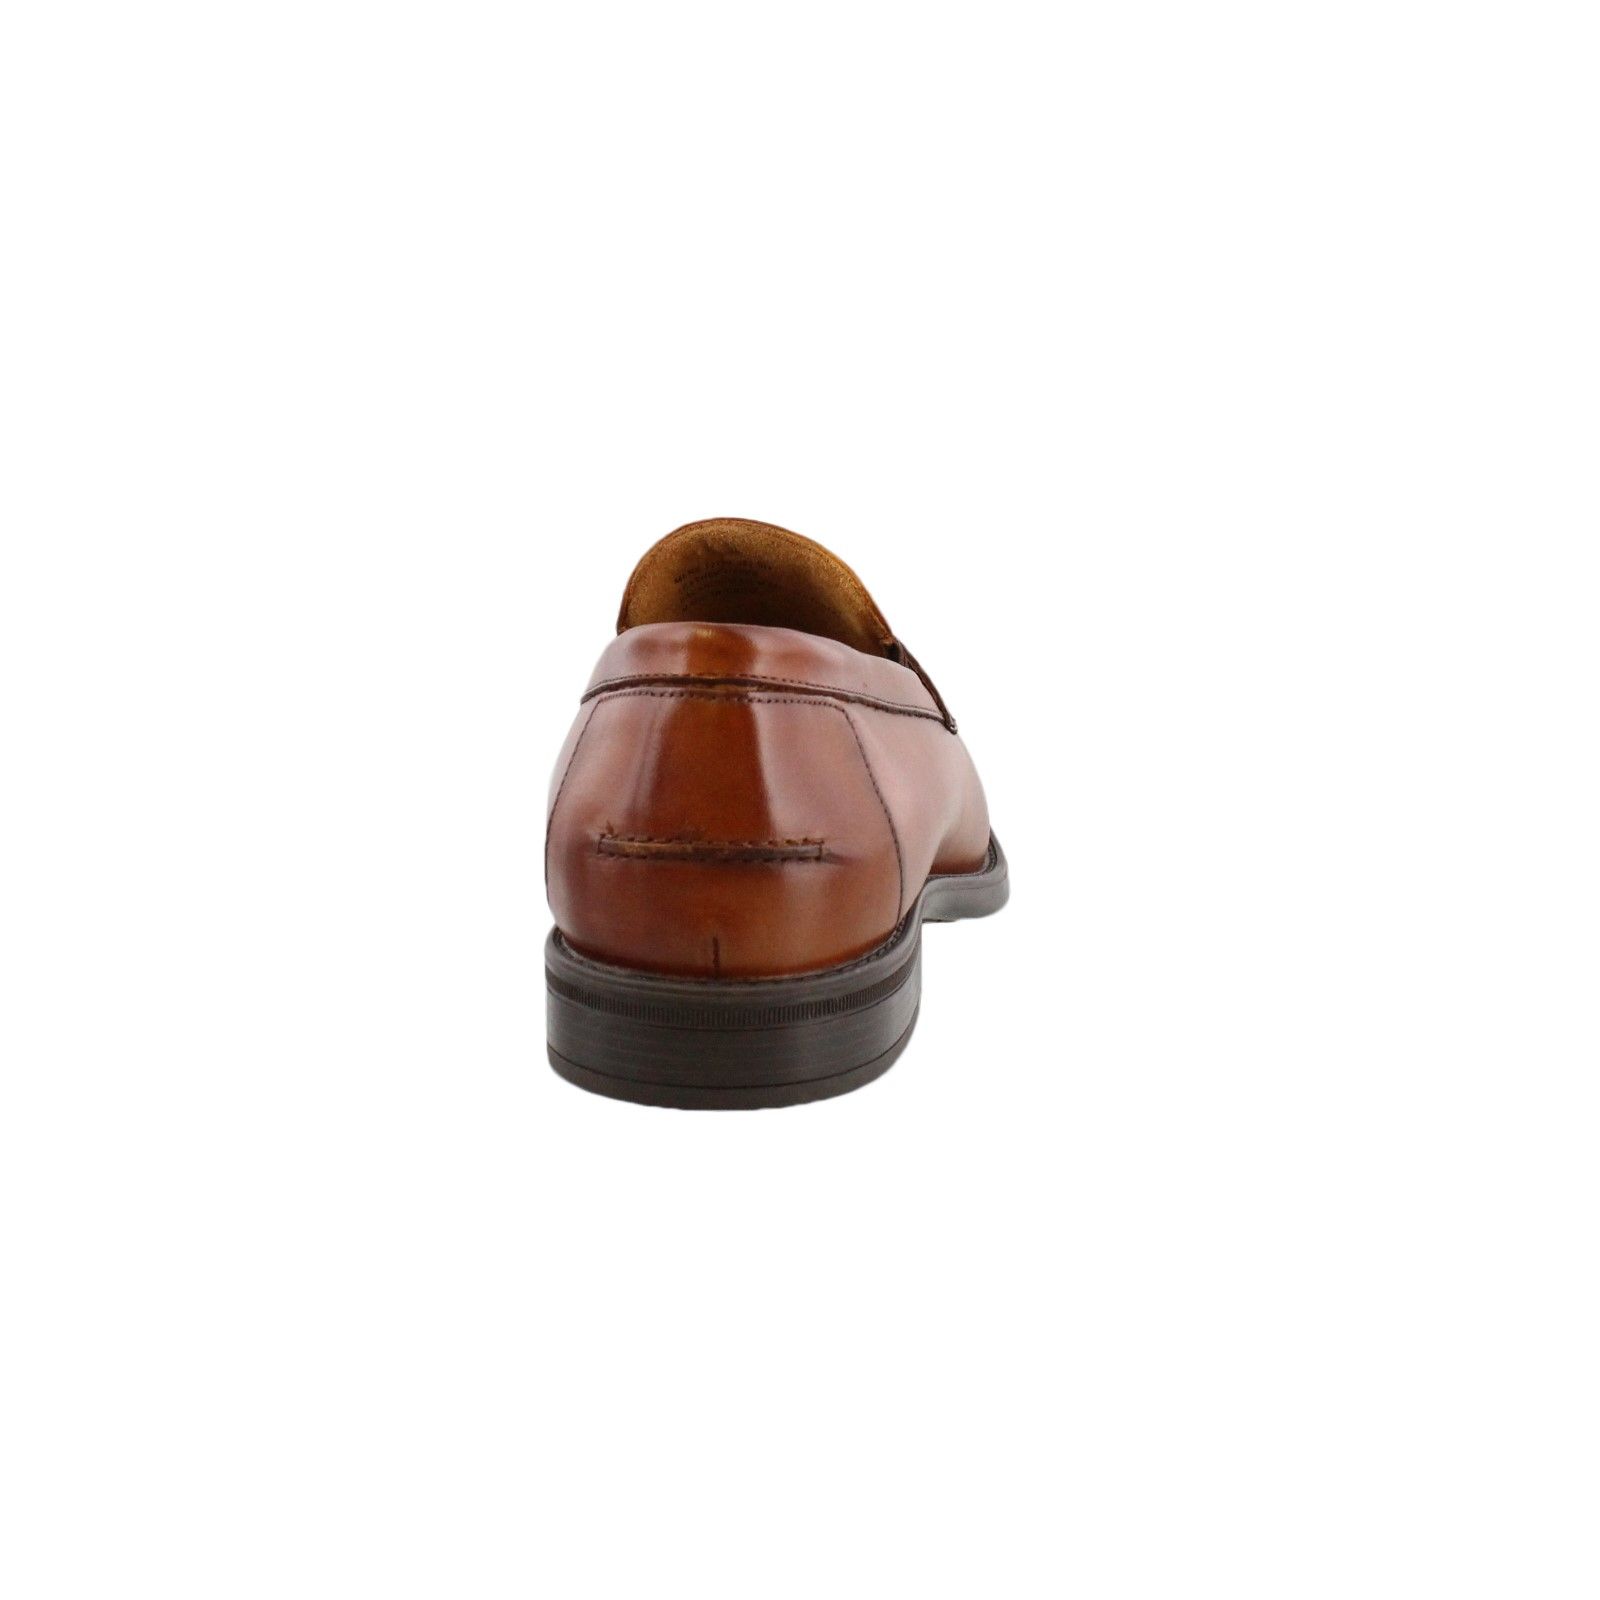 Florsheim Midtown Penny Loafer Mens shoes Cognac Leather Cushioned 12159-221